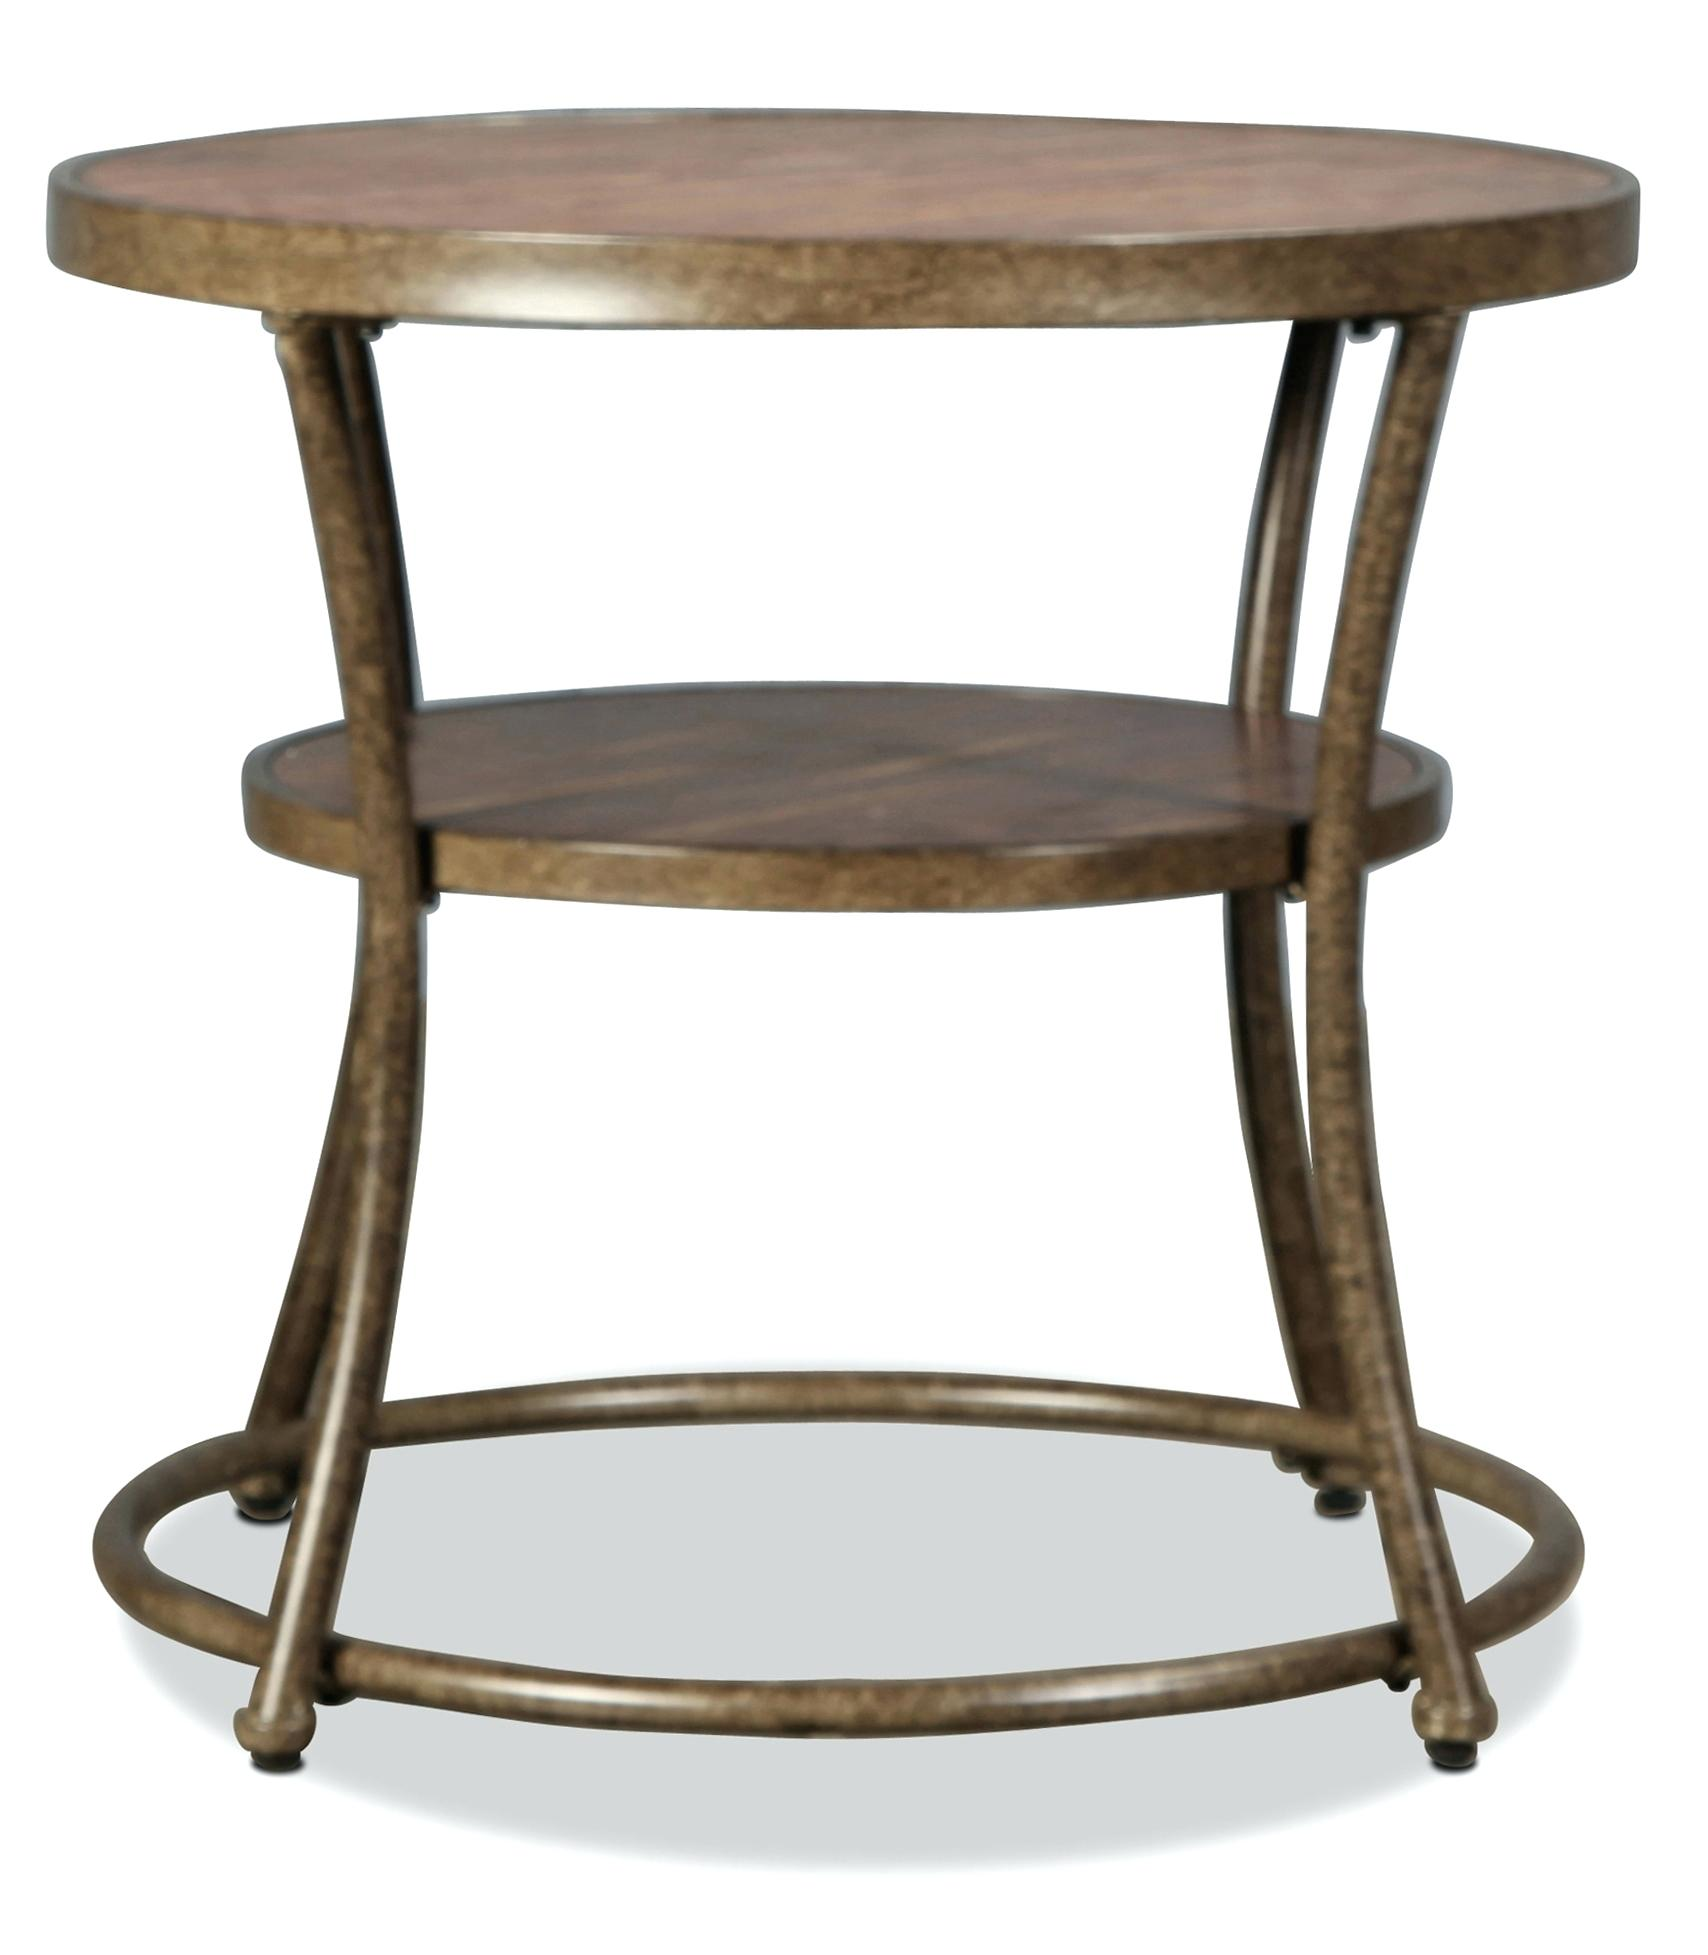 pet beds the super awesome small distressed end table accent and occasional furniture pine bronze sears washer dryer home accents country farm dining room legs wood bissell little